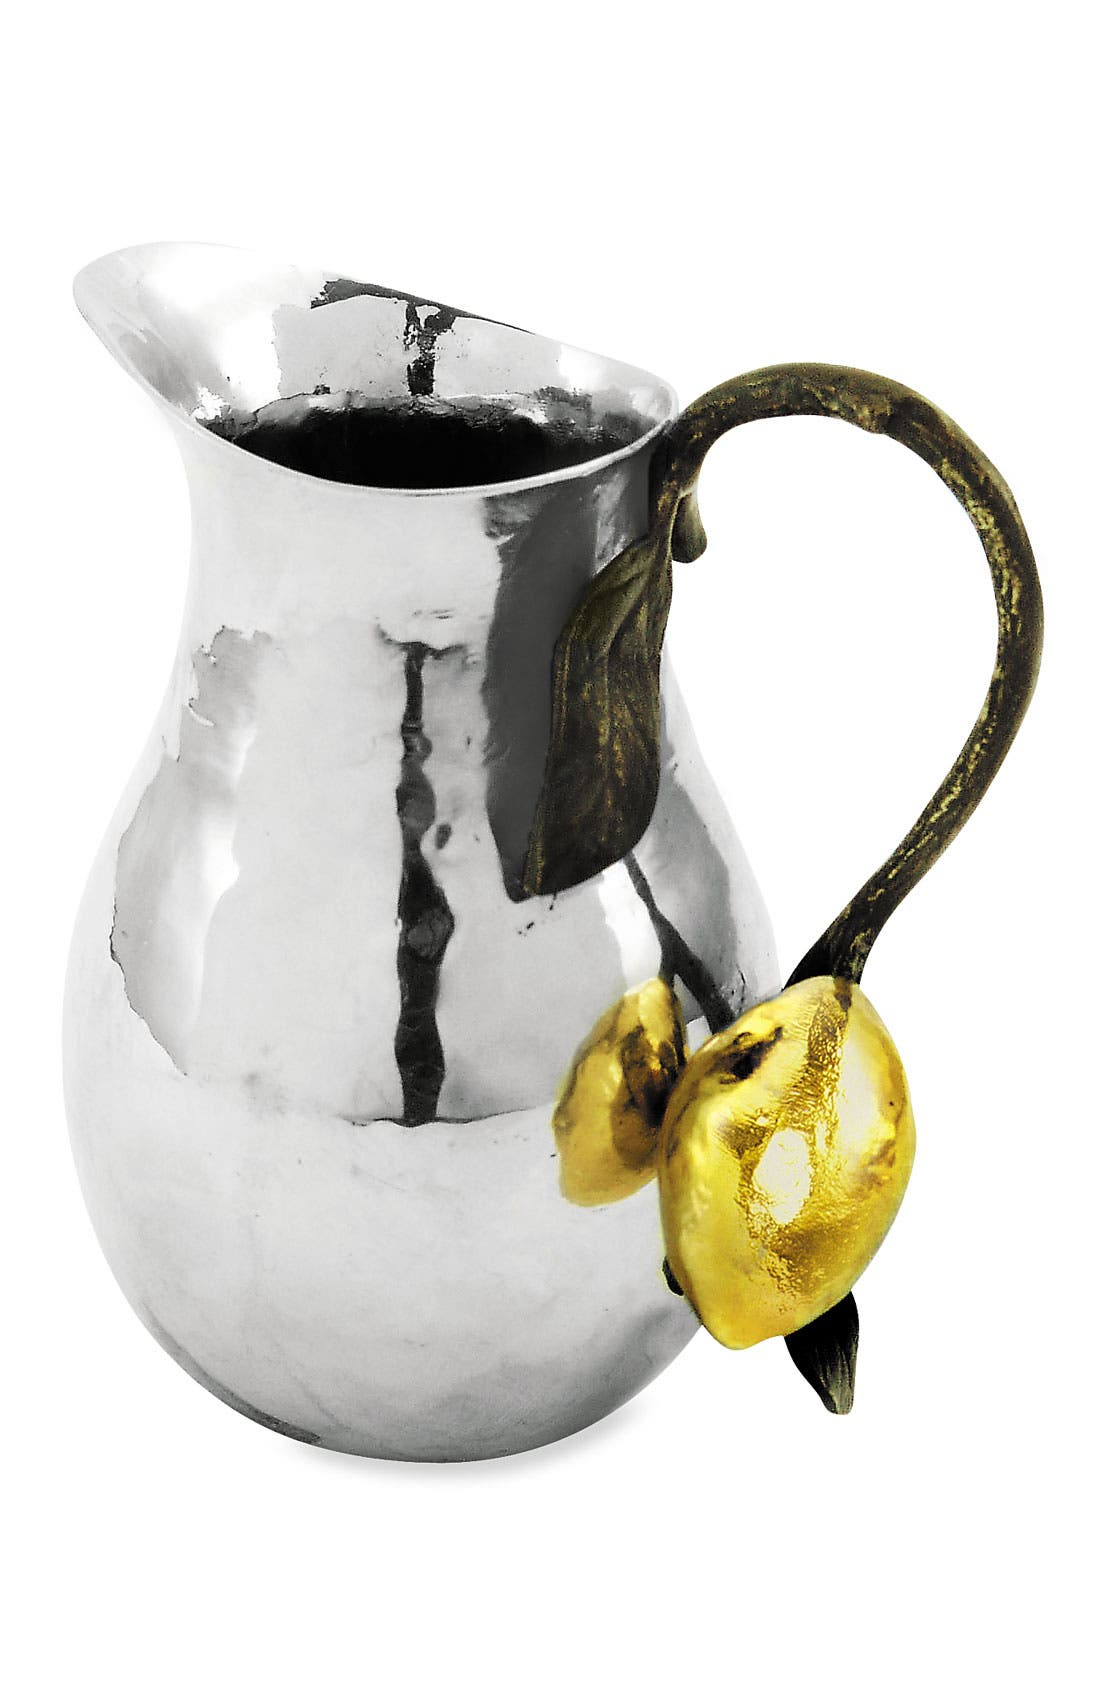 'Lemonwood' Mini Pitcher,                             Main thumbnail 1, color,                             Stainless Steel